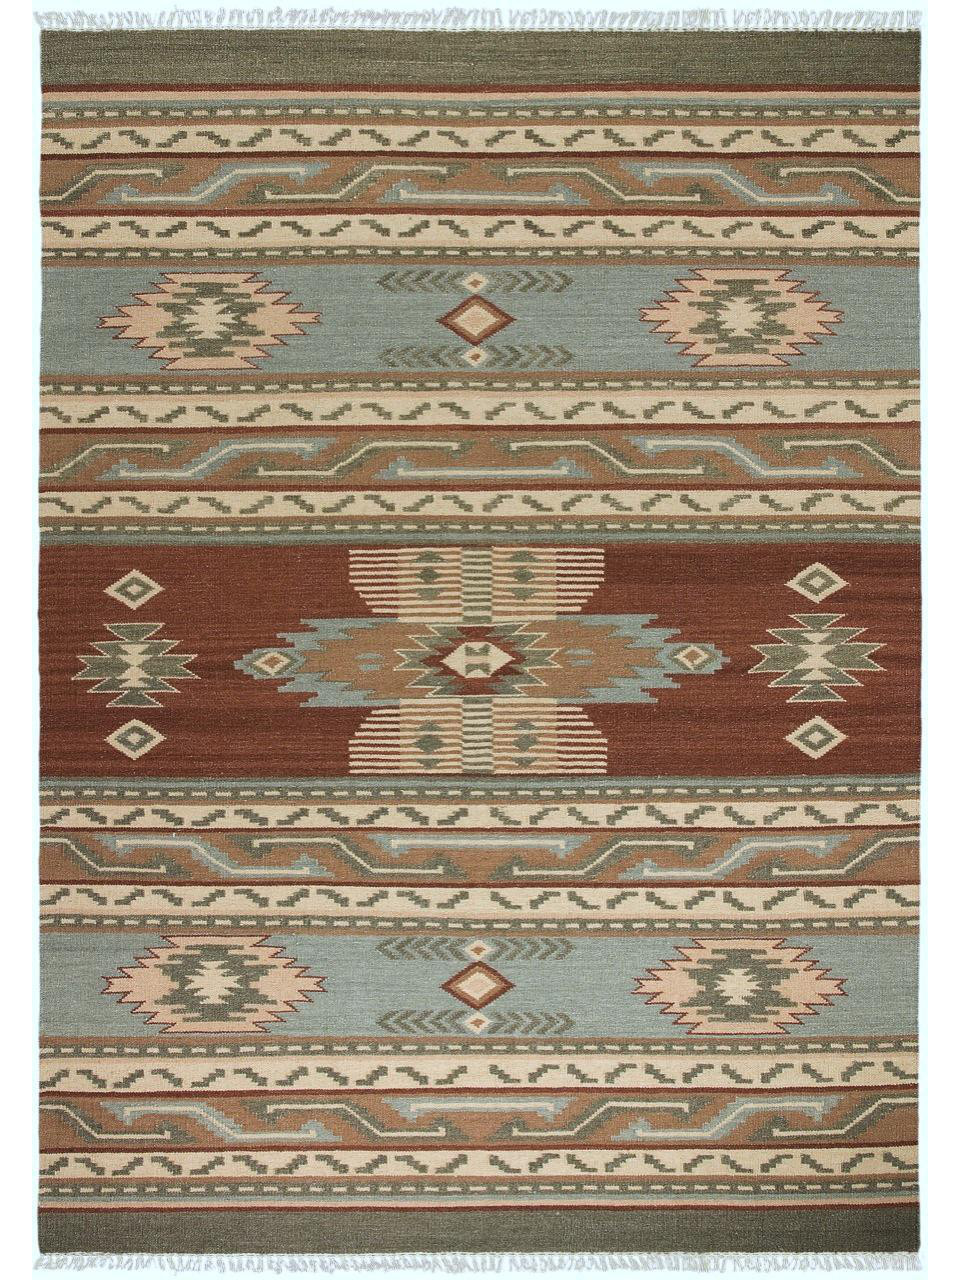 Traditional kilims - Sumak-Kilim 10089